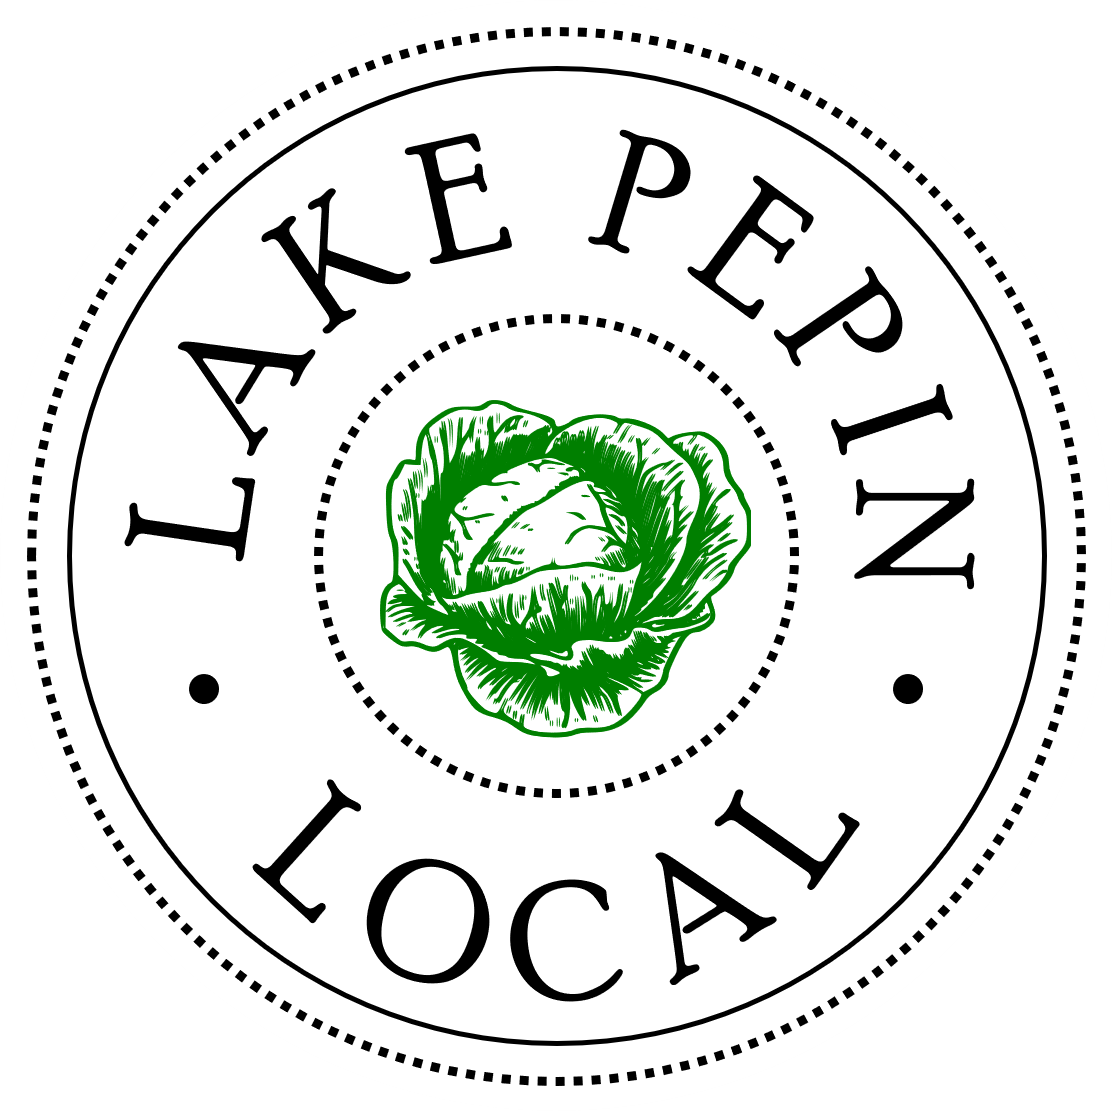 lake pepin local food group logo